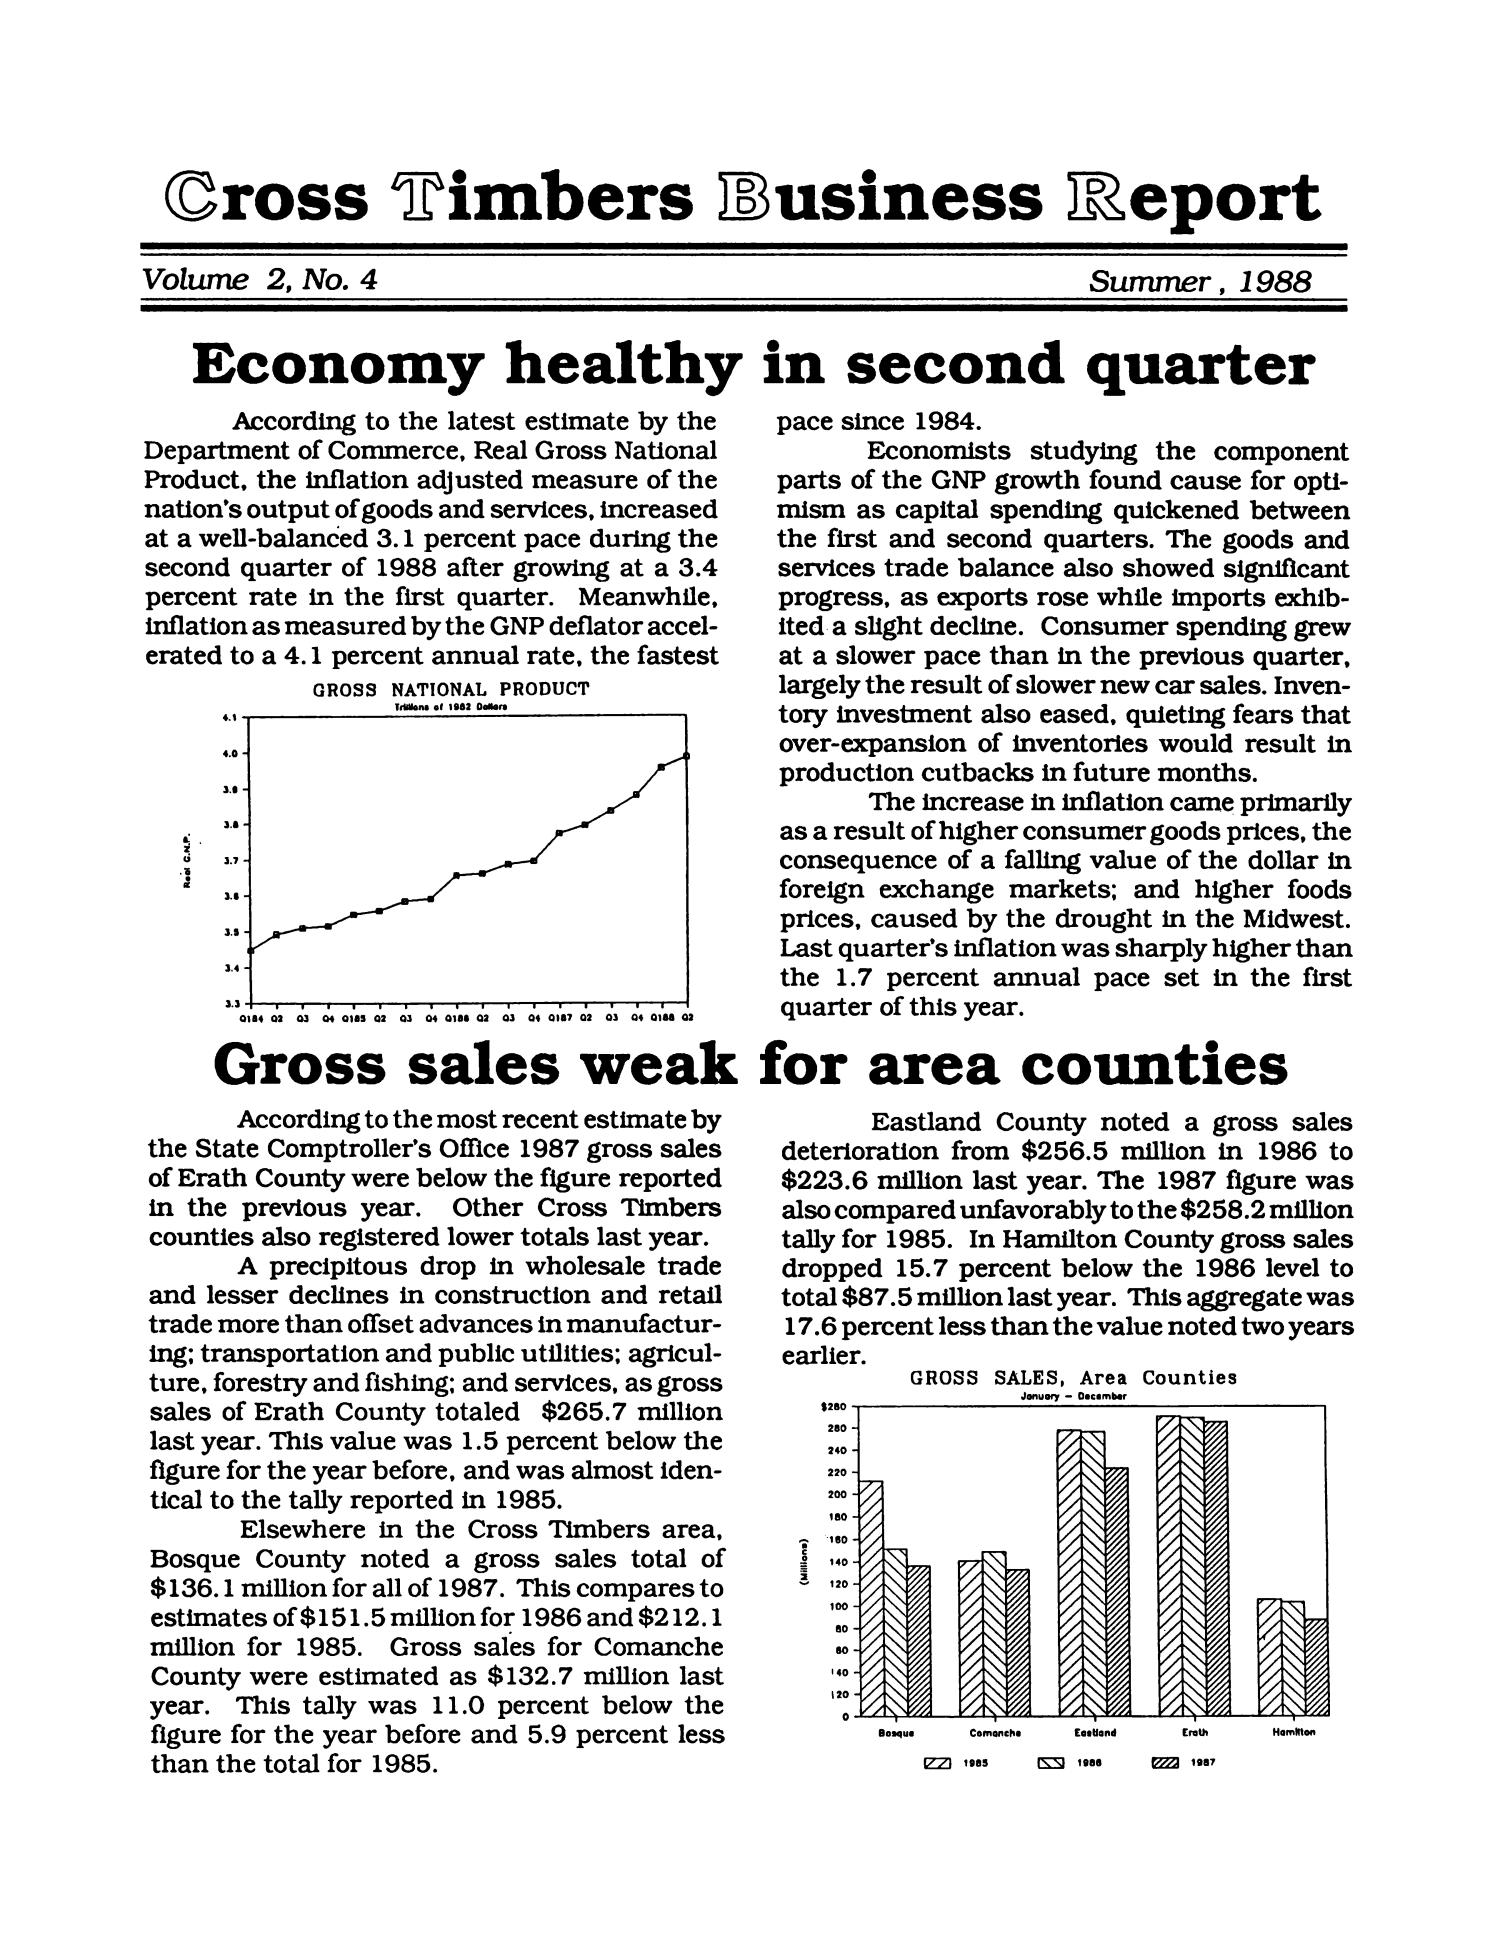 Cross Timbers Business Report, Volume 2, Number 4, Summer 1988                                                                                                      1